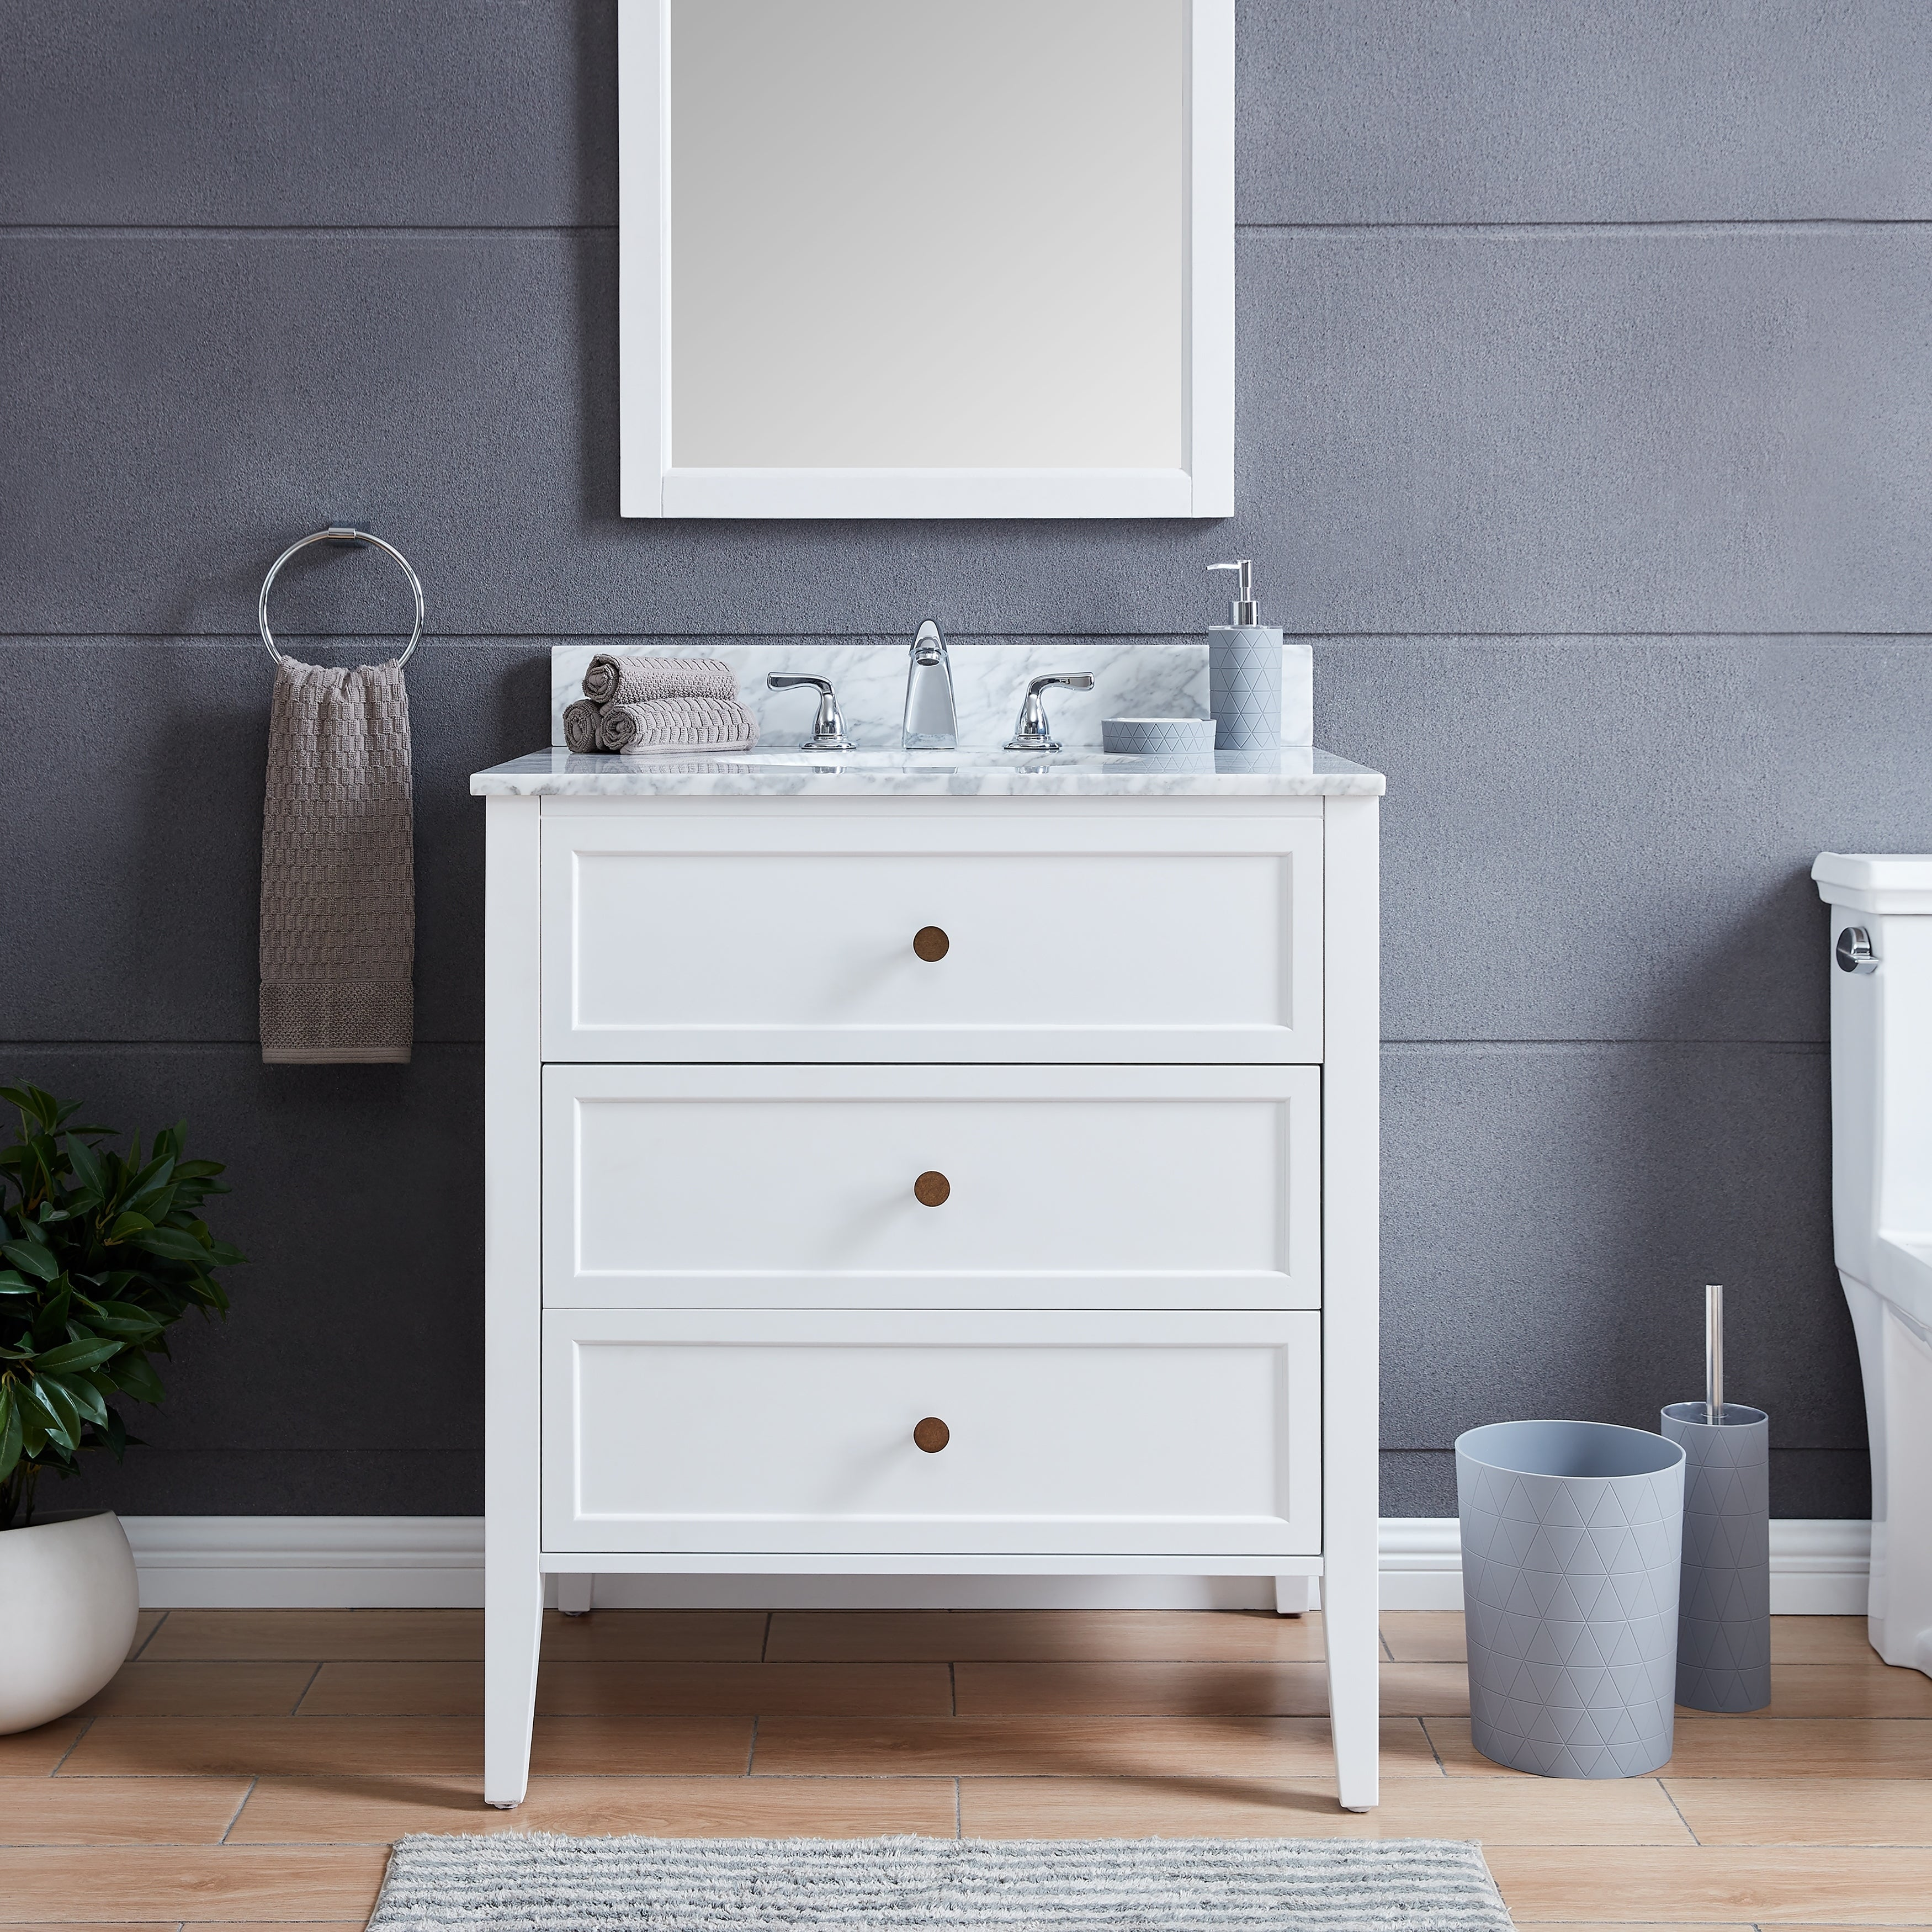 The Gray Barn Bentley Modern Farmhouse White Stone 30 Inch Vanity Sink Overstock 28860299